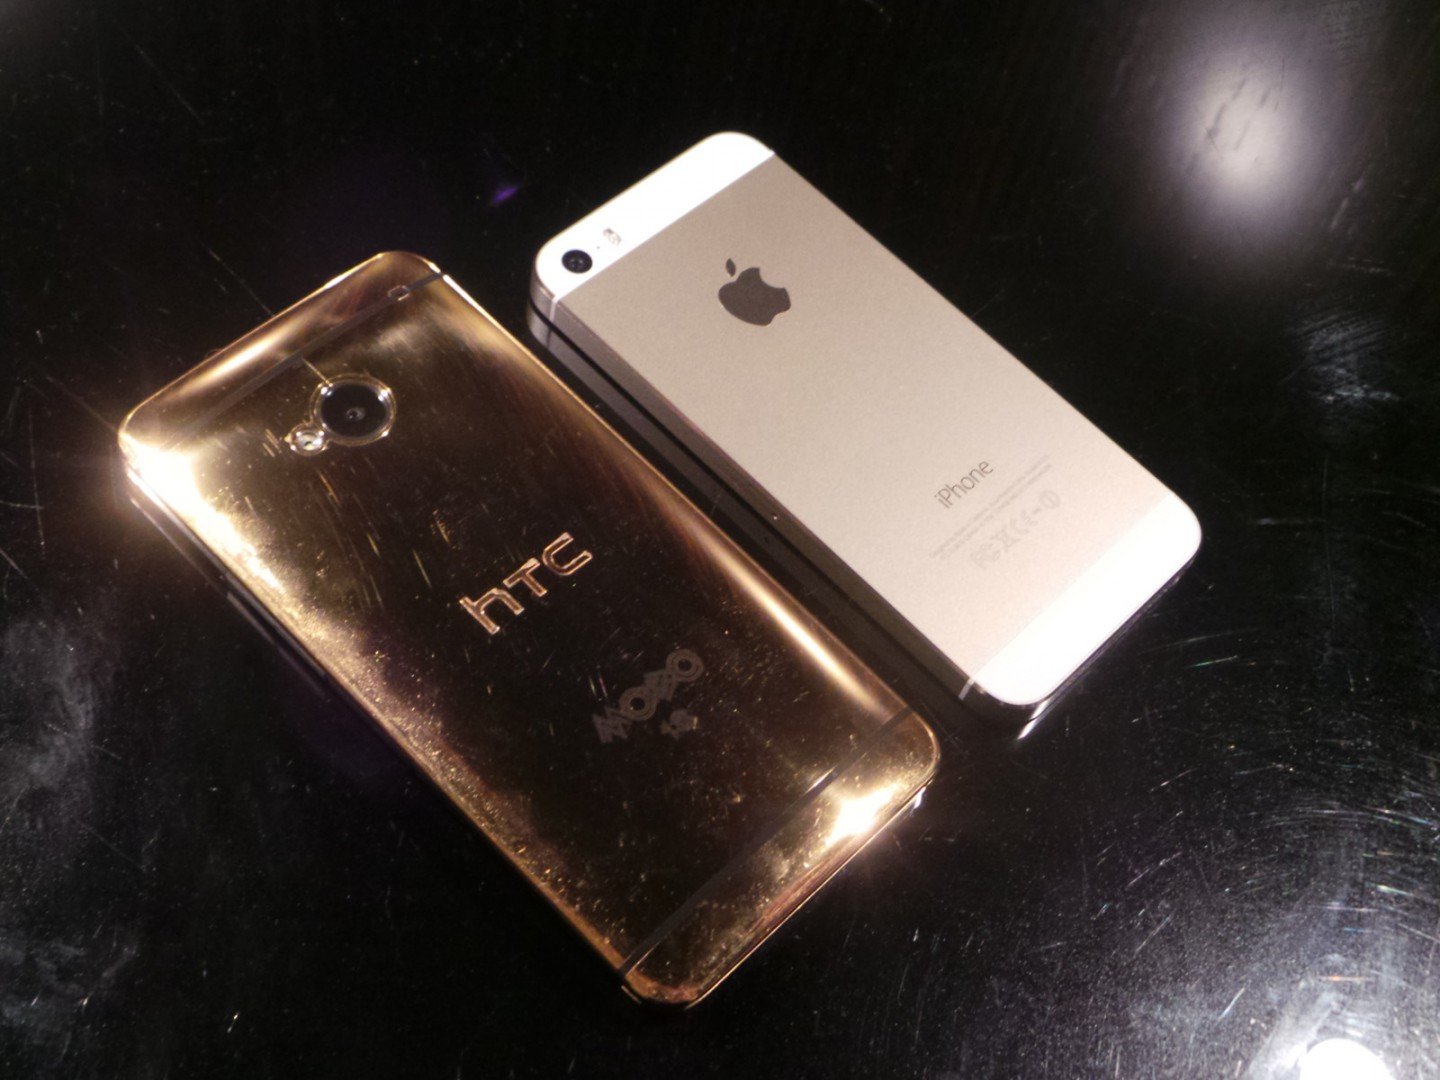 HTC One in Gold vs iPhone 5s Champagner